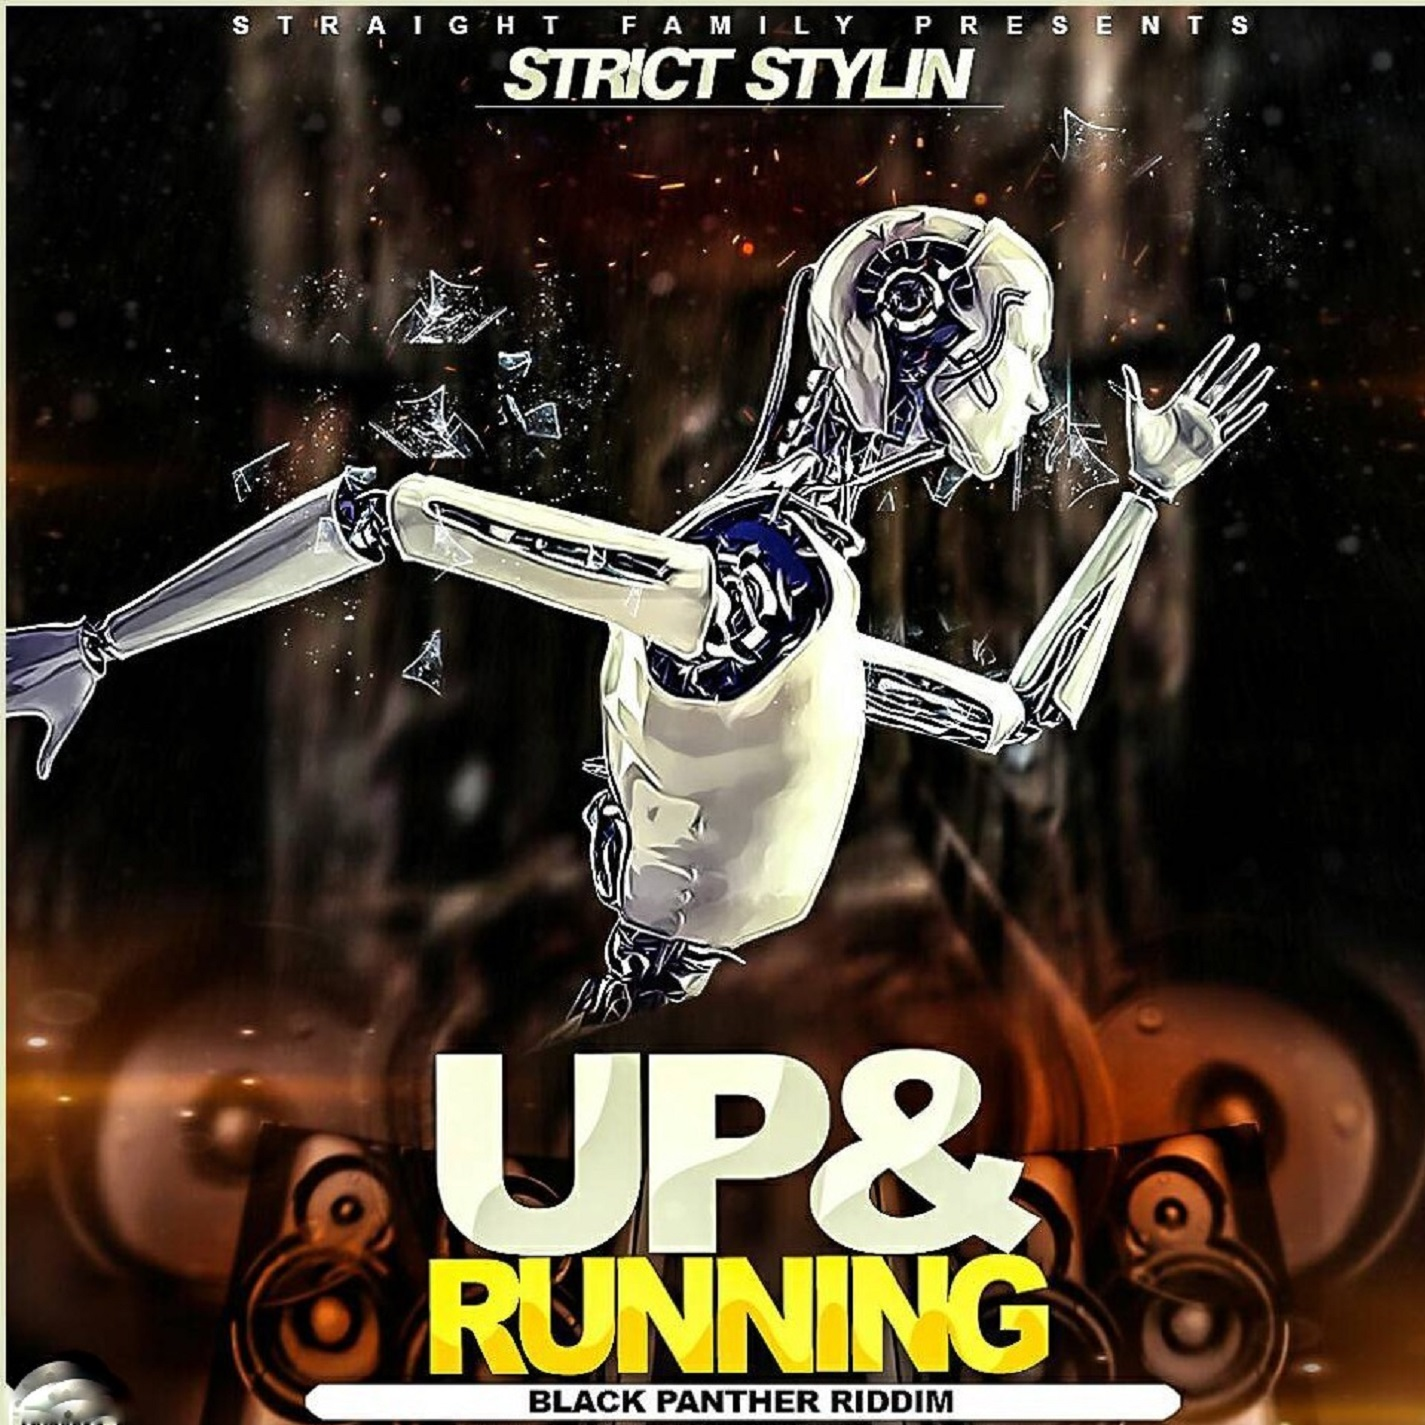 Strict Stylin - Up and Running (Black Panther Riddim)